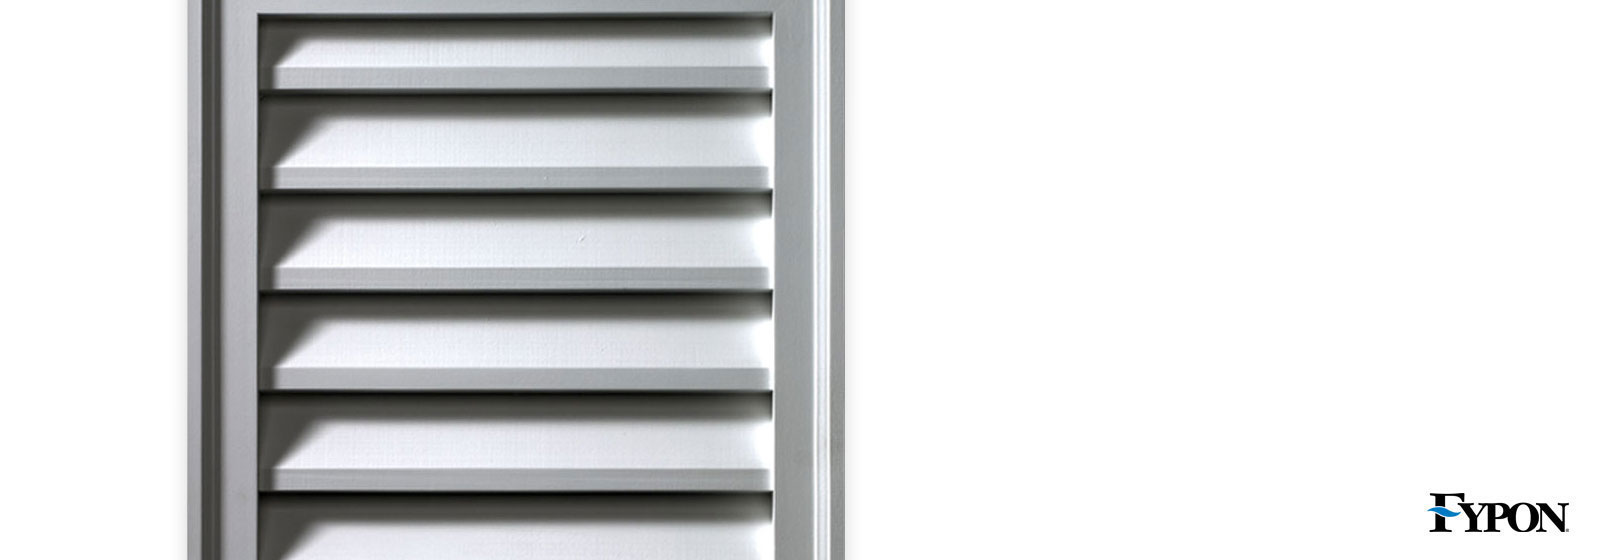 Fypon vertical gable vent louvers for Fypon gable vents